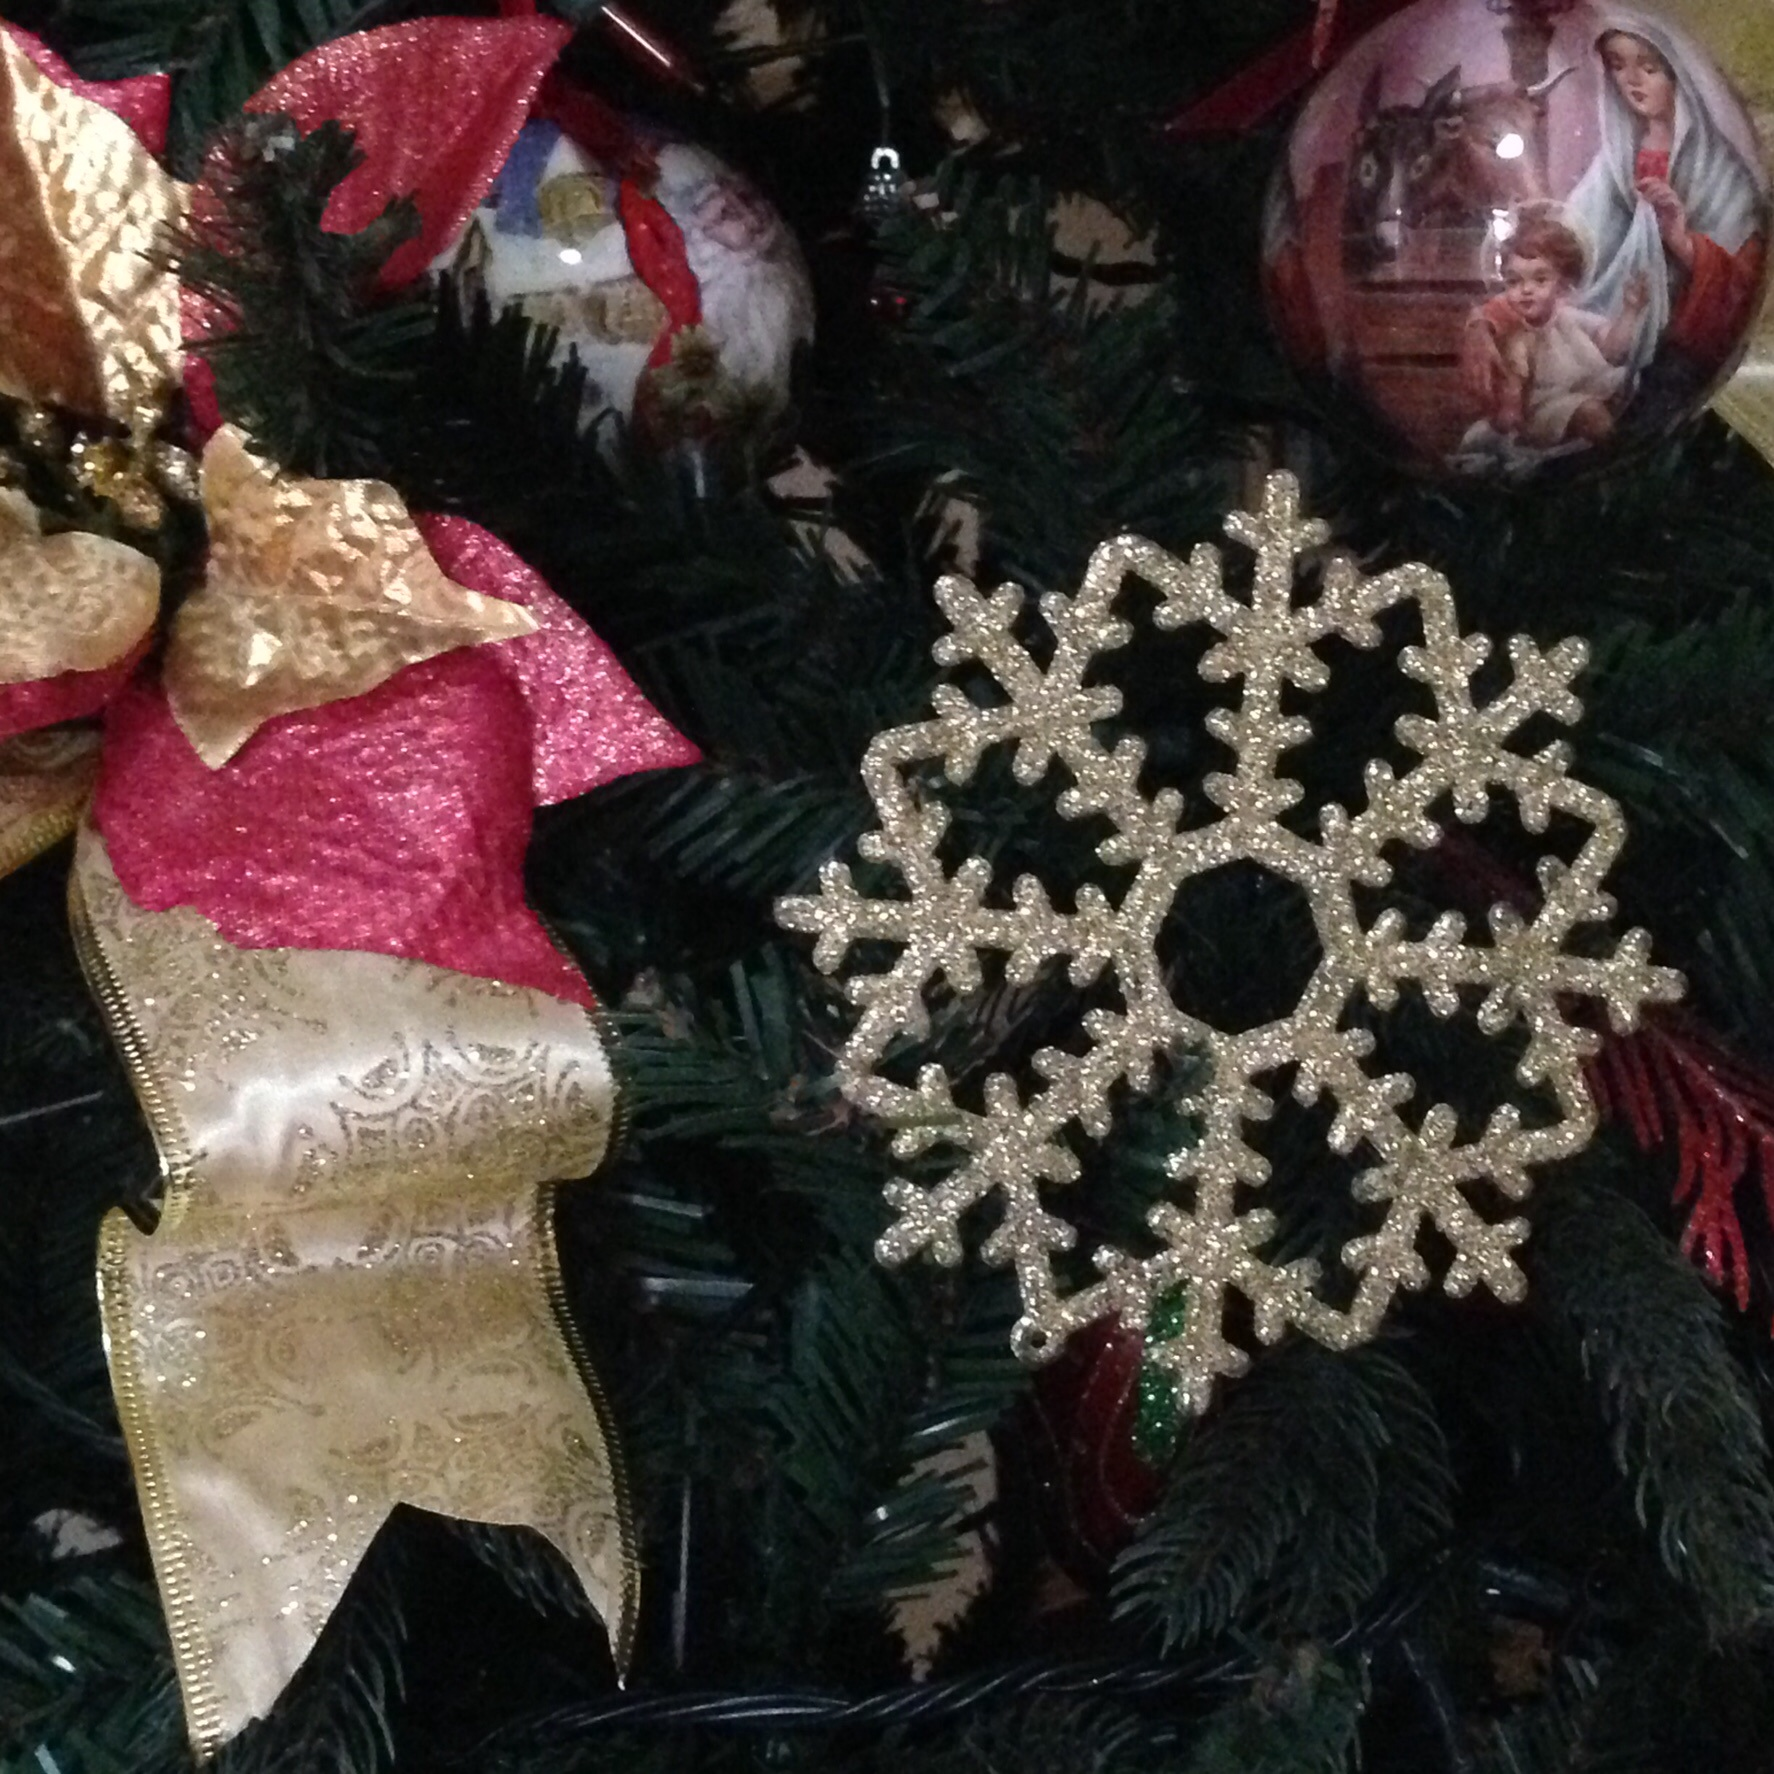 Got the snowflakes trinkets for Php5/piece only